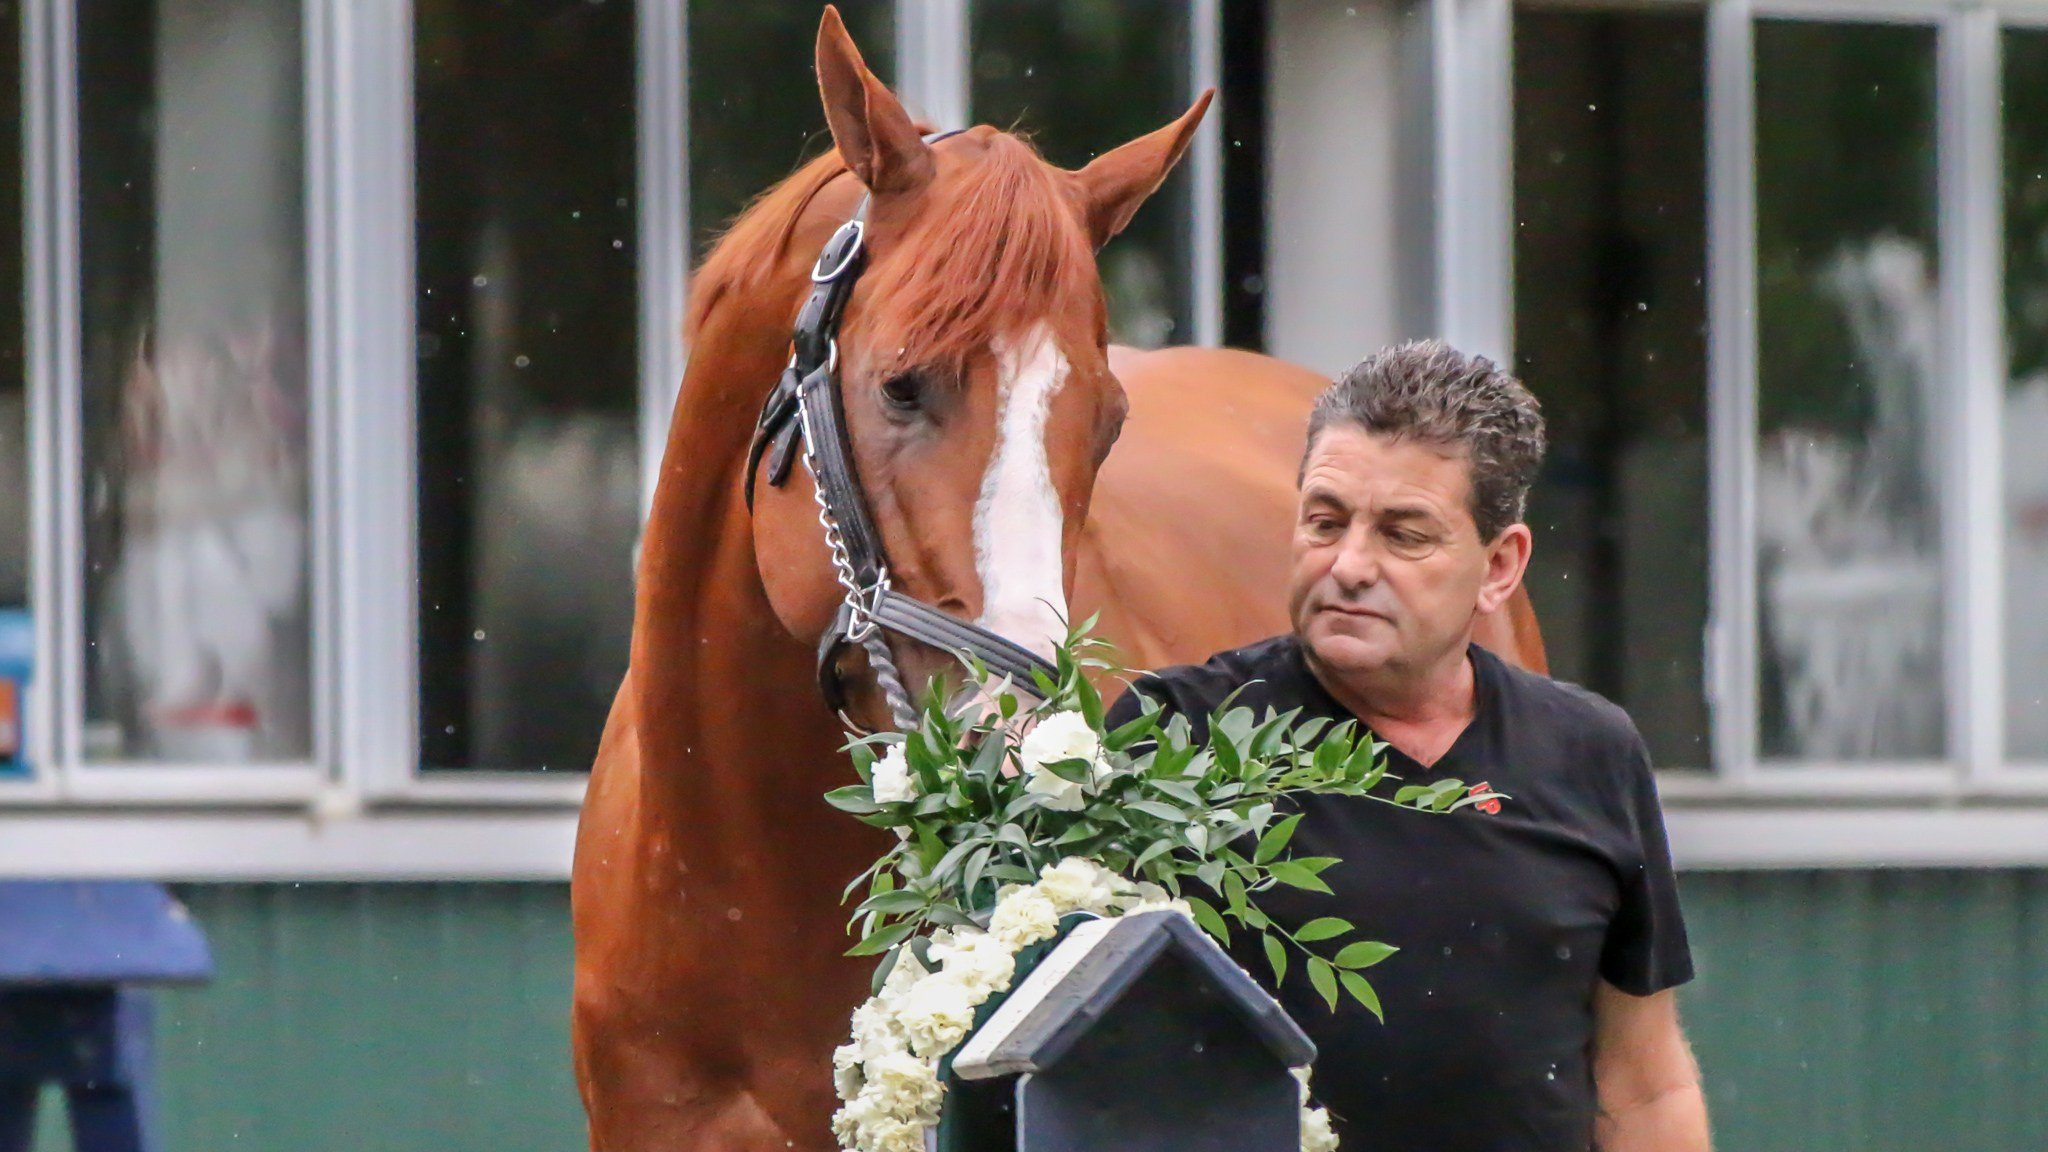 Justify tries to munch on his garland of carnations the morning after the Belmont. (WDRB photo by Eric Crawford)